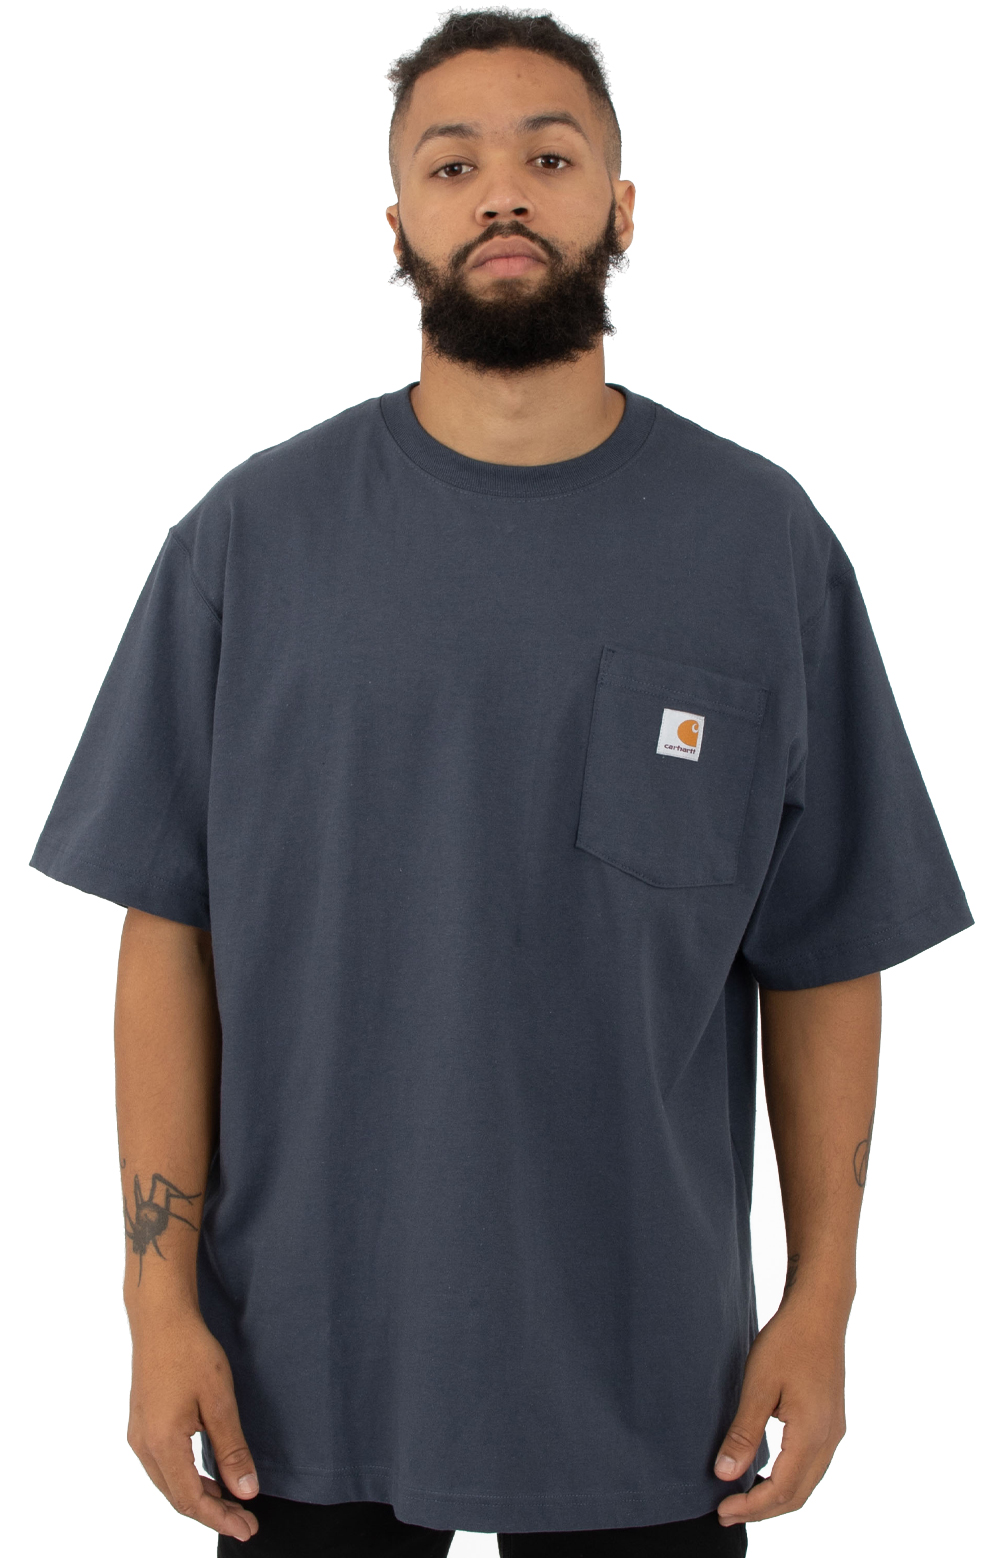 (K87) Workwear Pocket T-Shirt - Navy